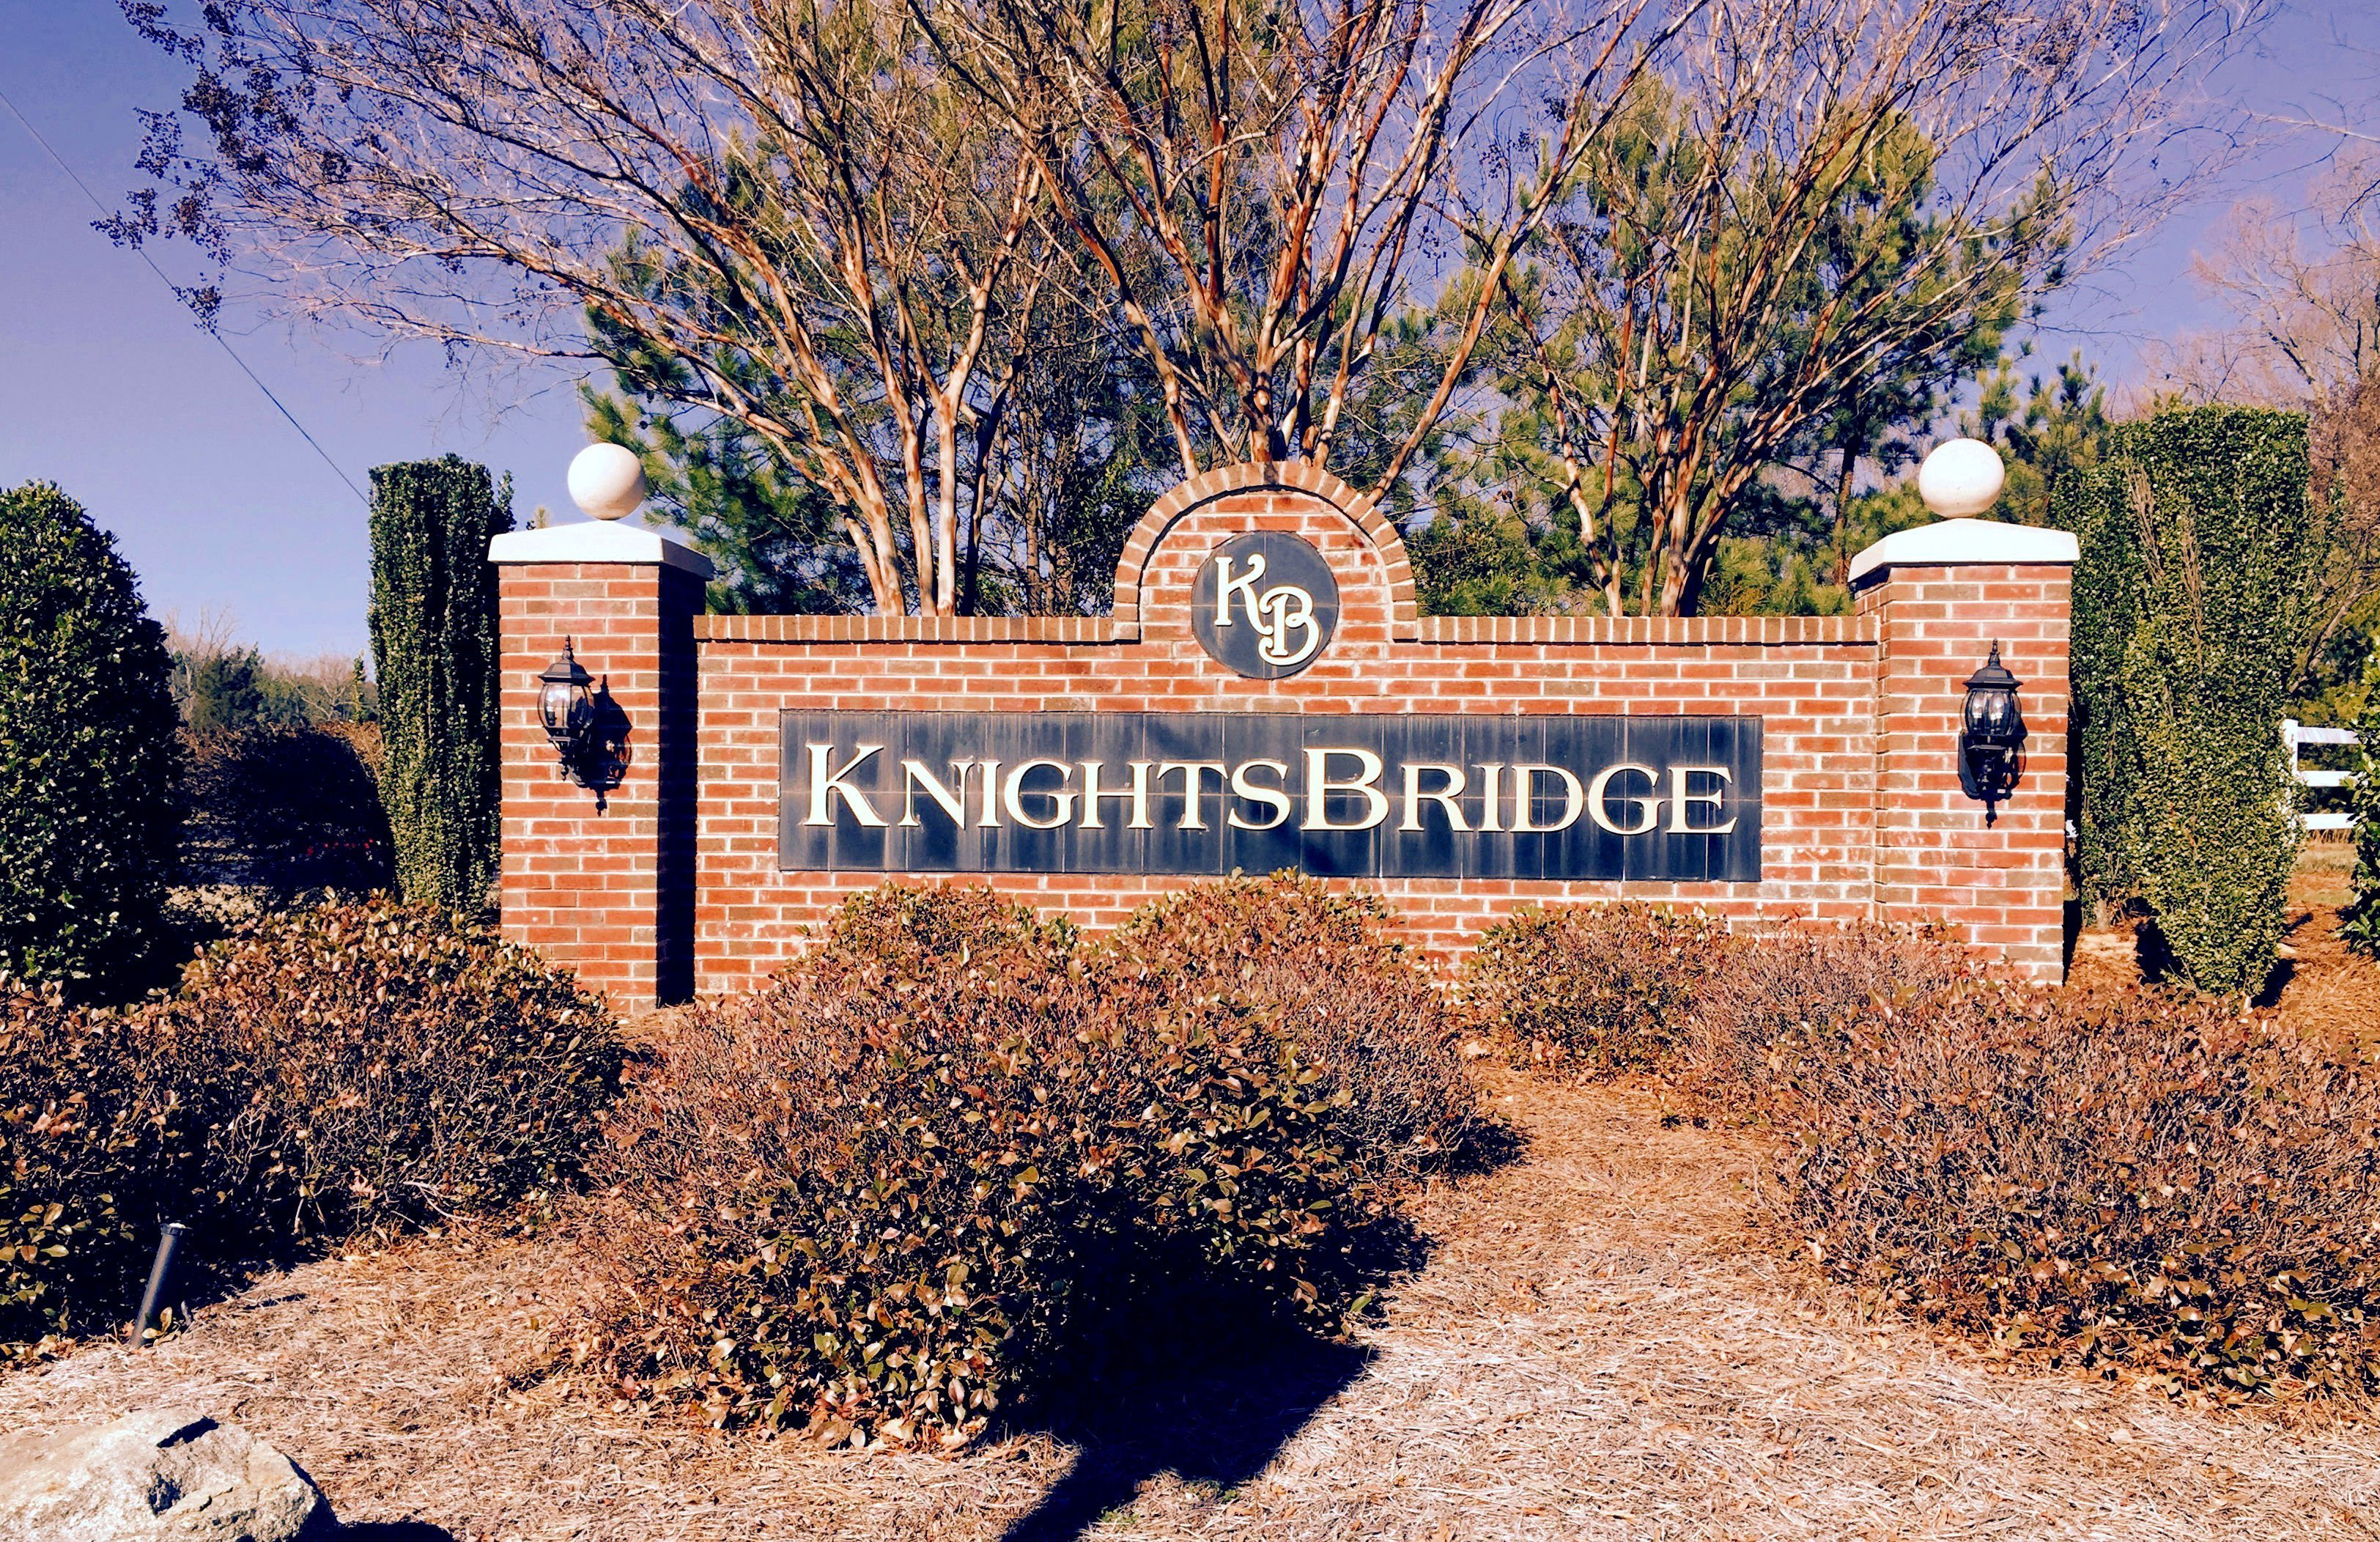 Knightsbridge homes fort mill and homes tega cay for The knightsbridge